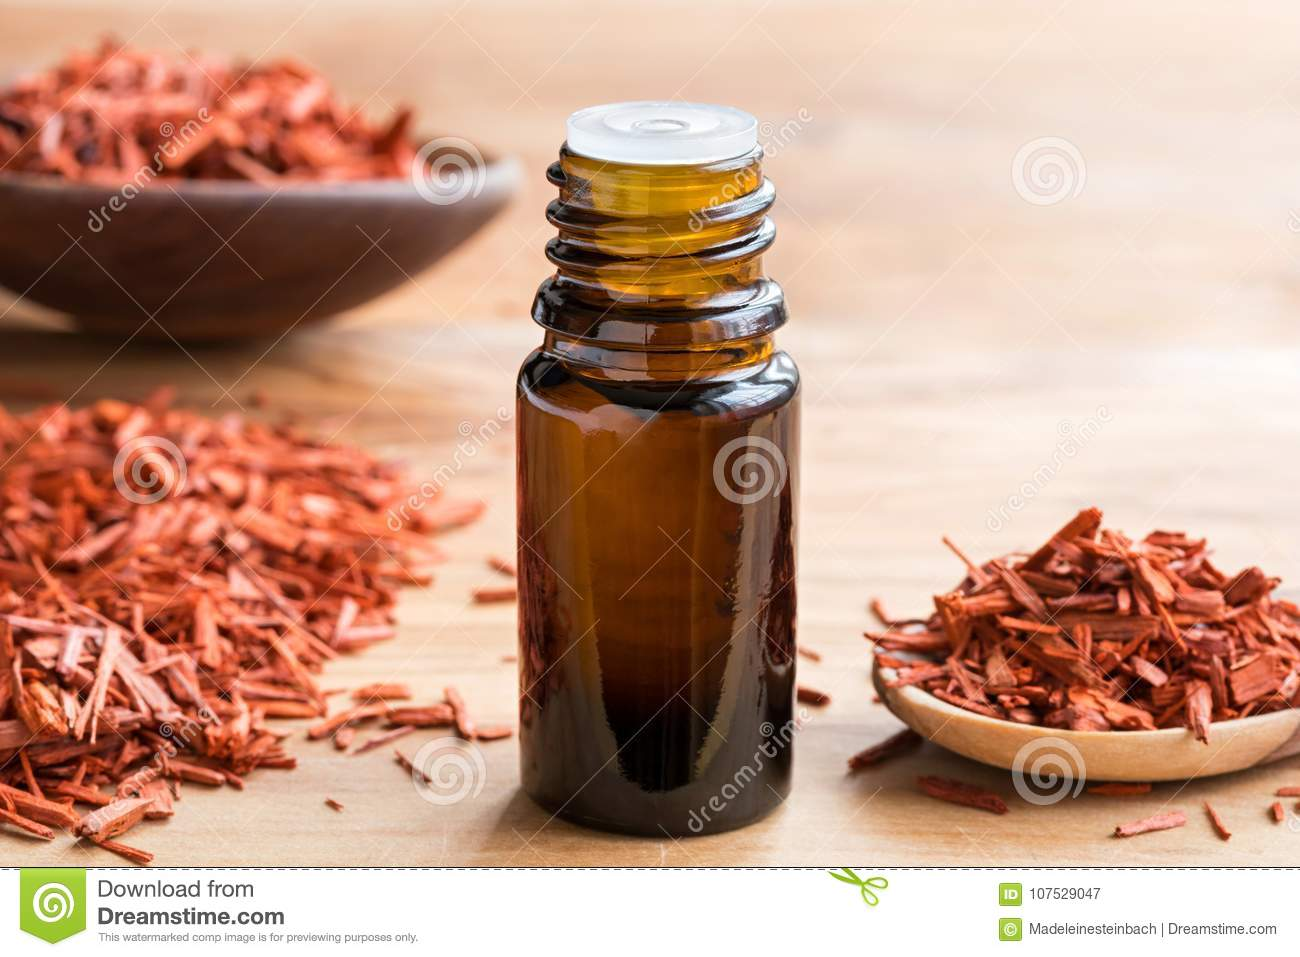 Download A Bottle Of Sandalwood Essential Oil With Sandalwood On A Wooden Stock Image - Image of pieces, organic: 107529047